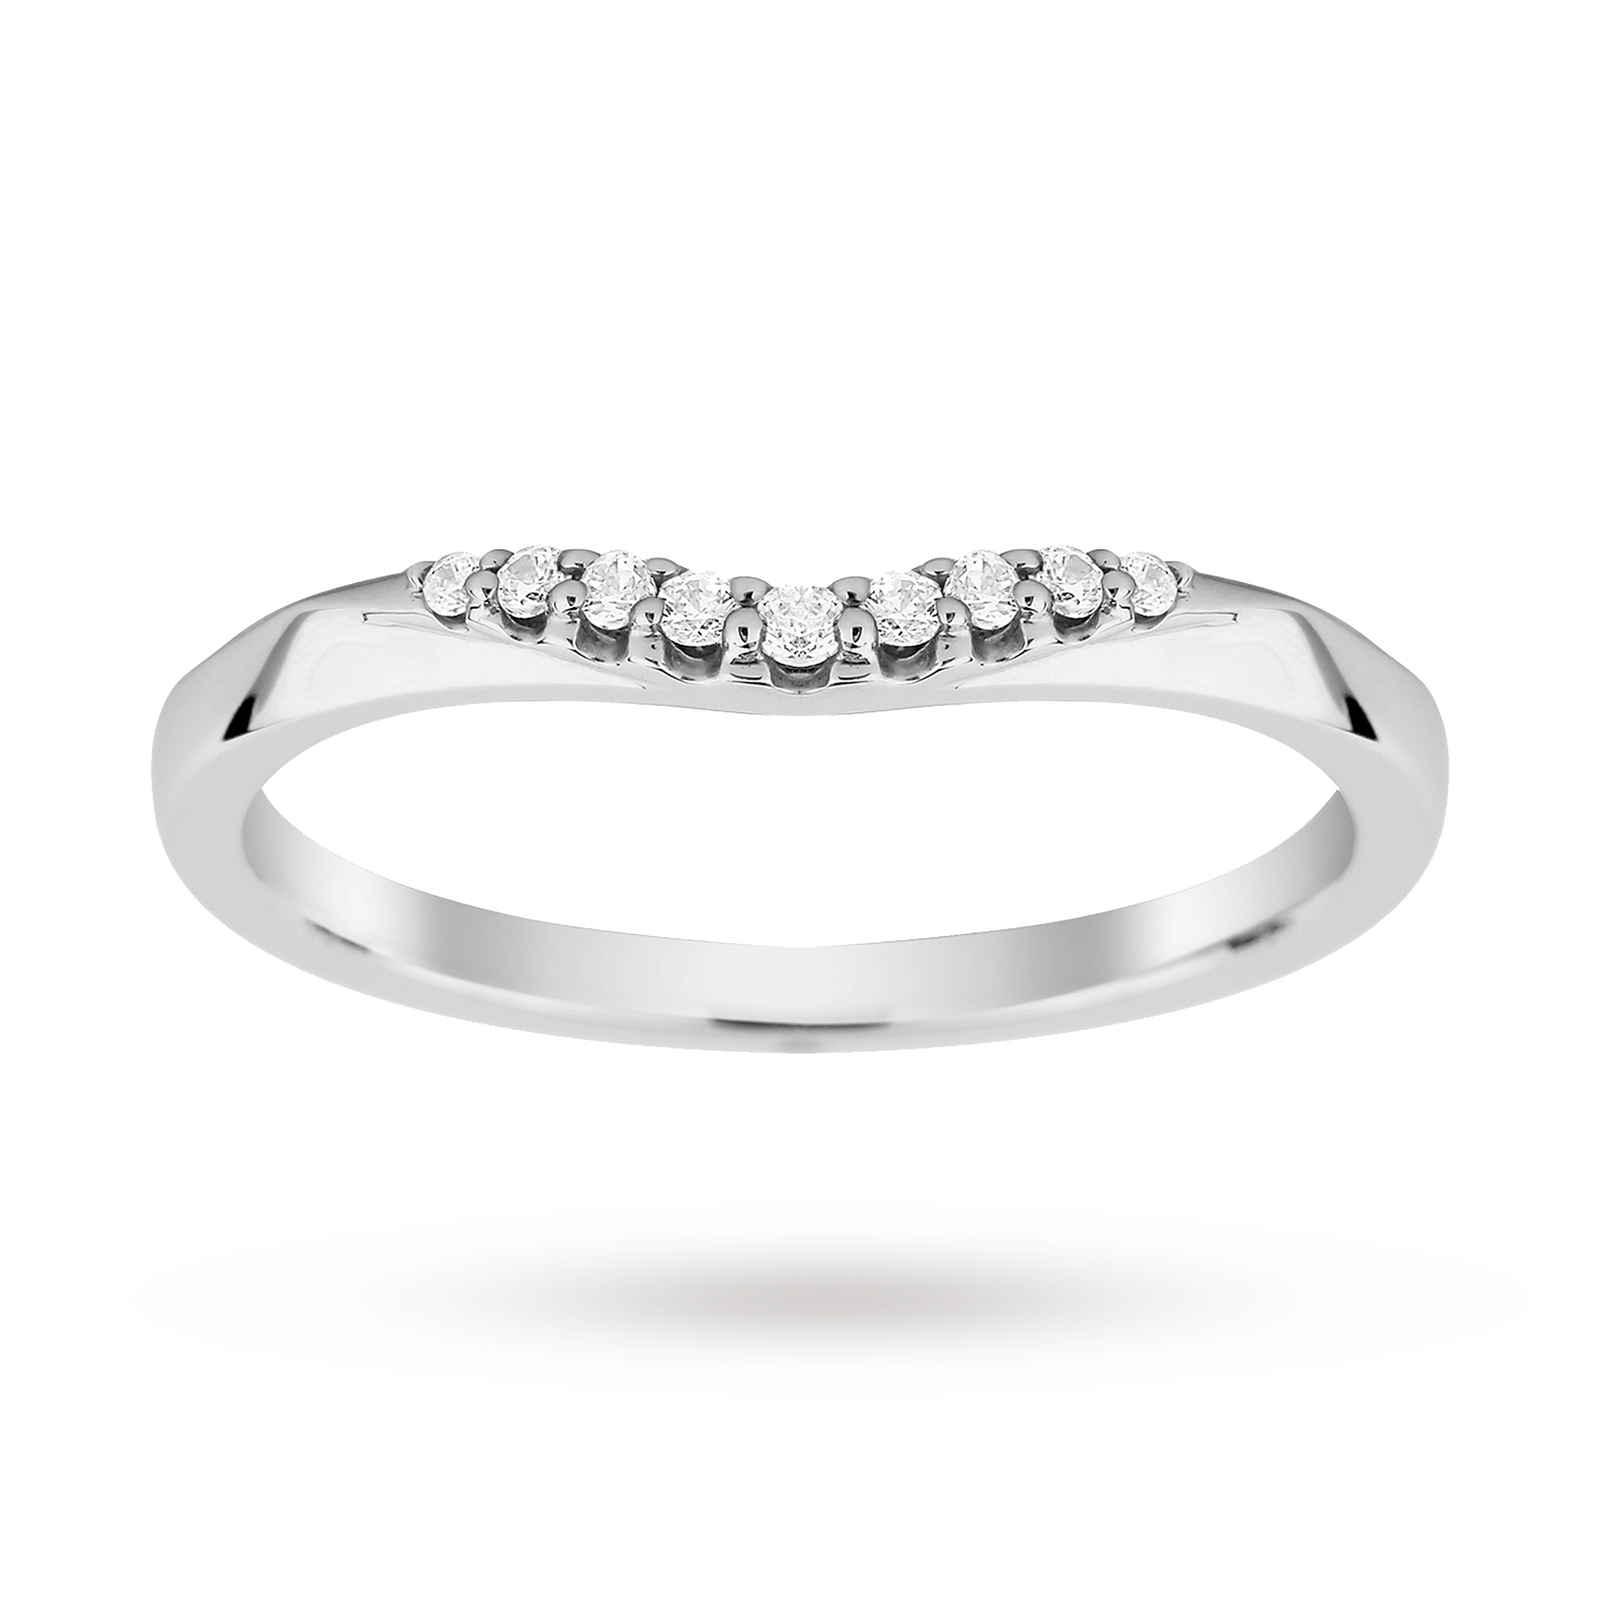 Platinum 0.10 Total Carat Weight Diamond Wedding Band - Ring Size J